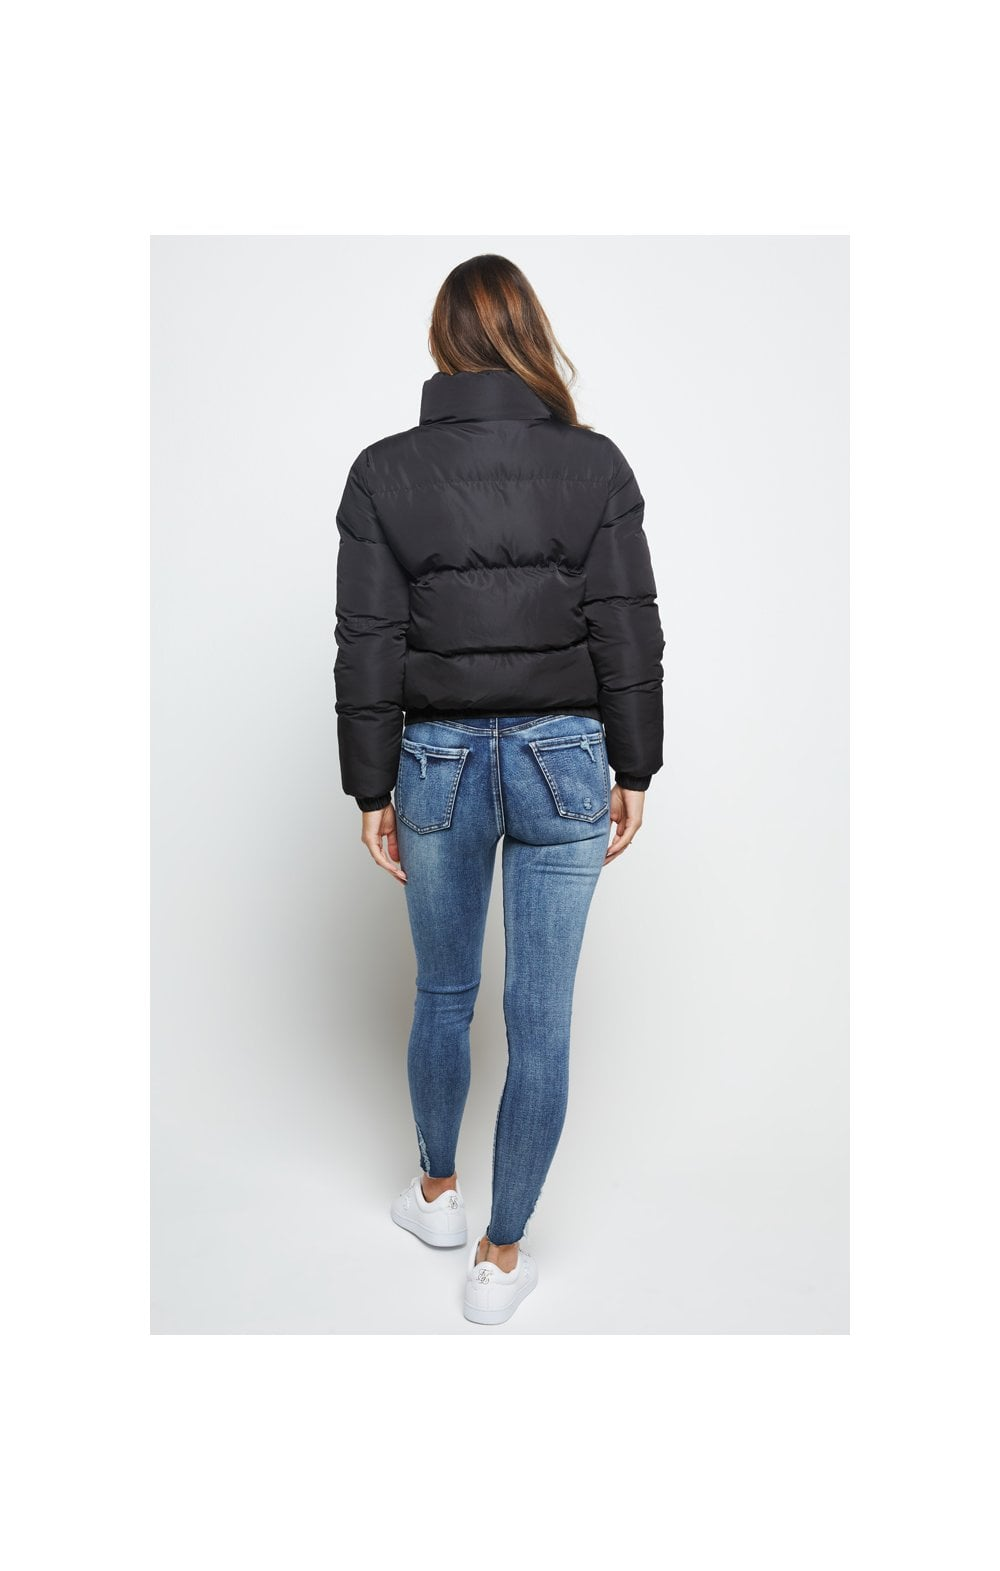 SikSilk Padded Crop Jacket - Black (6)